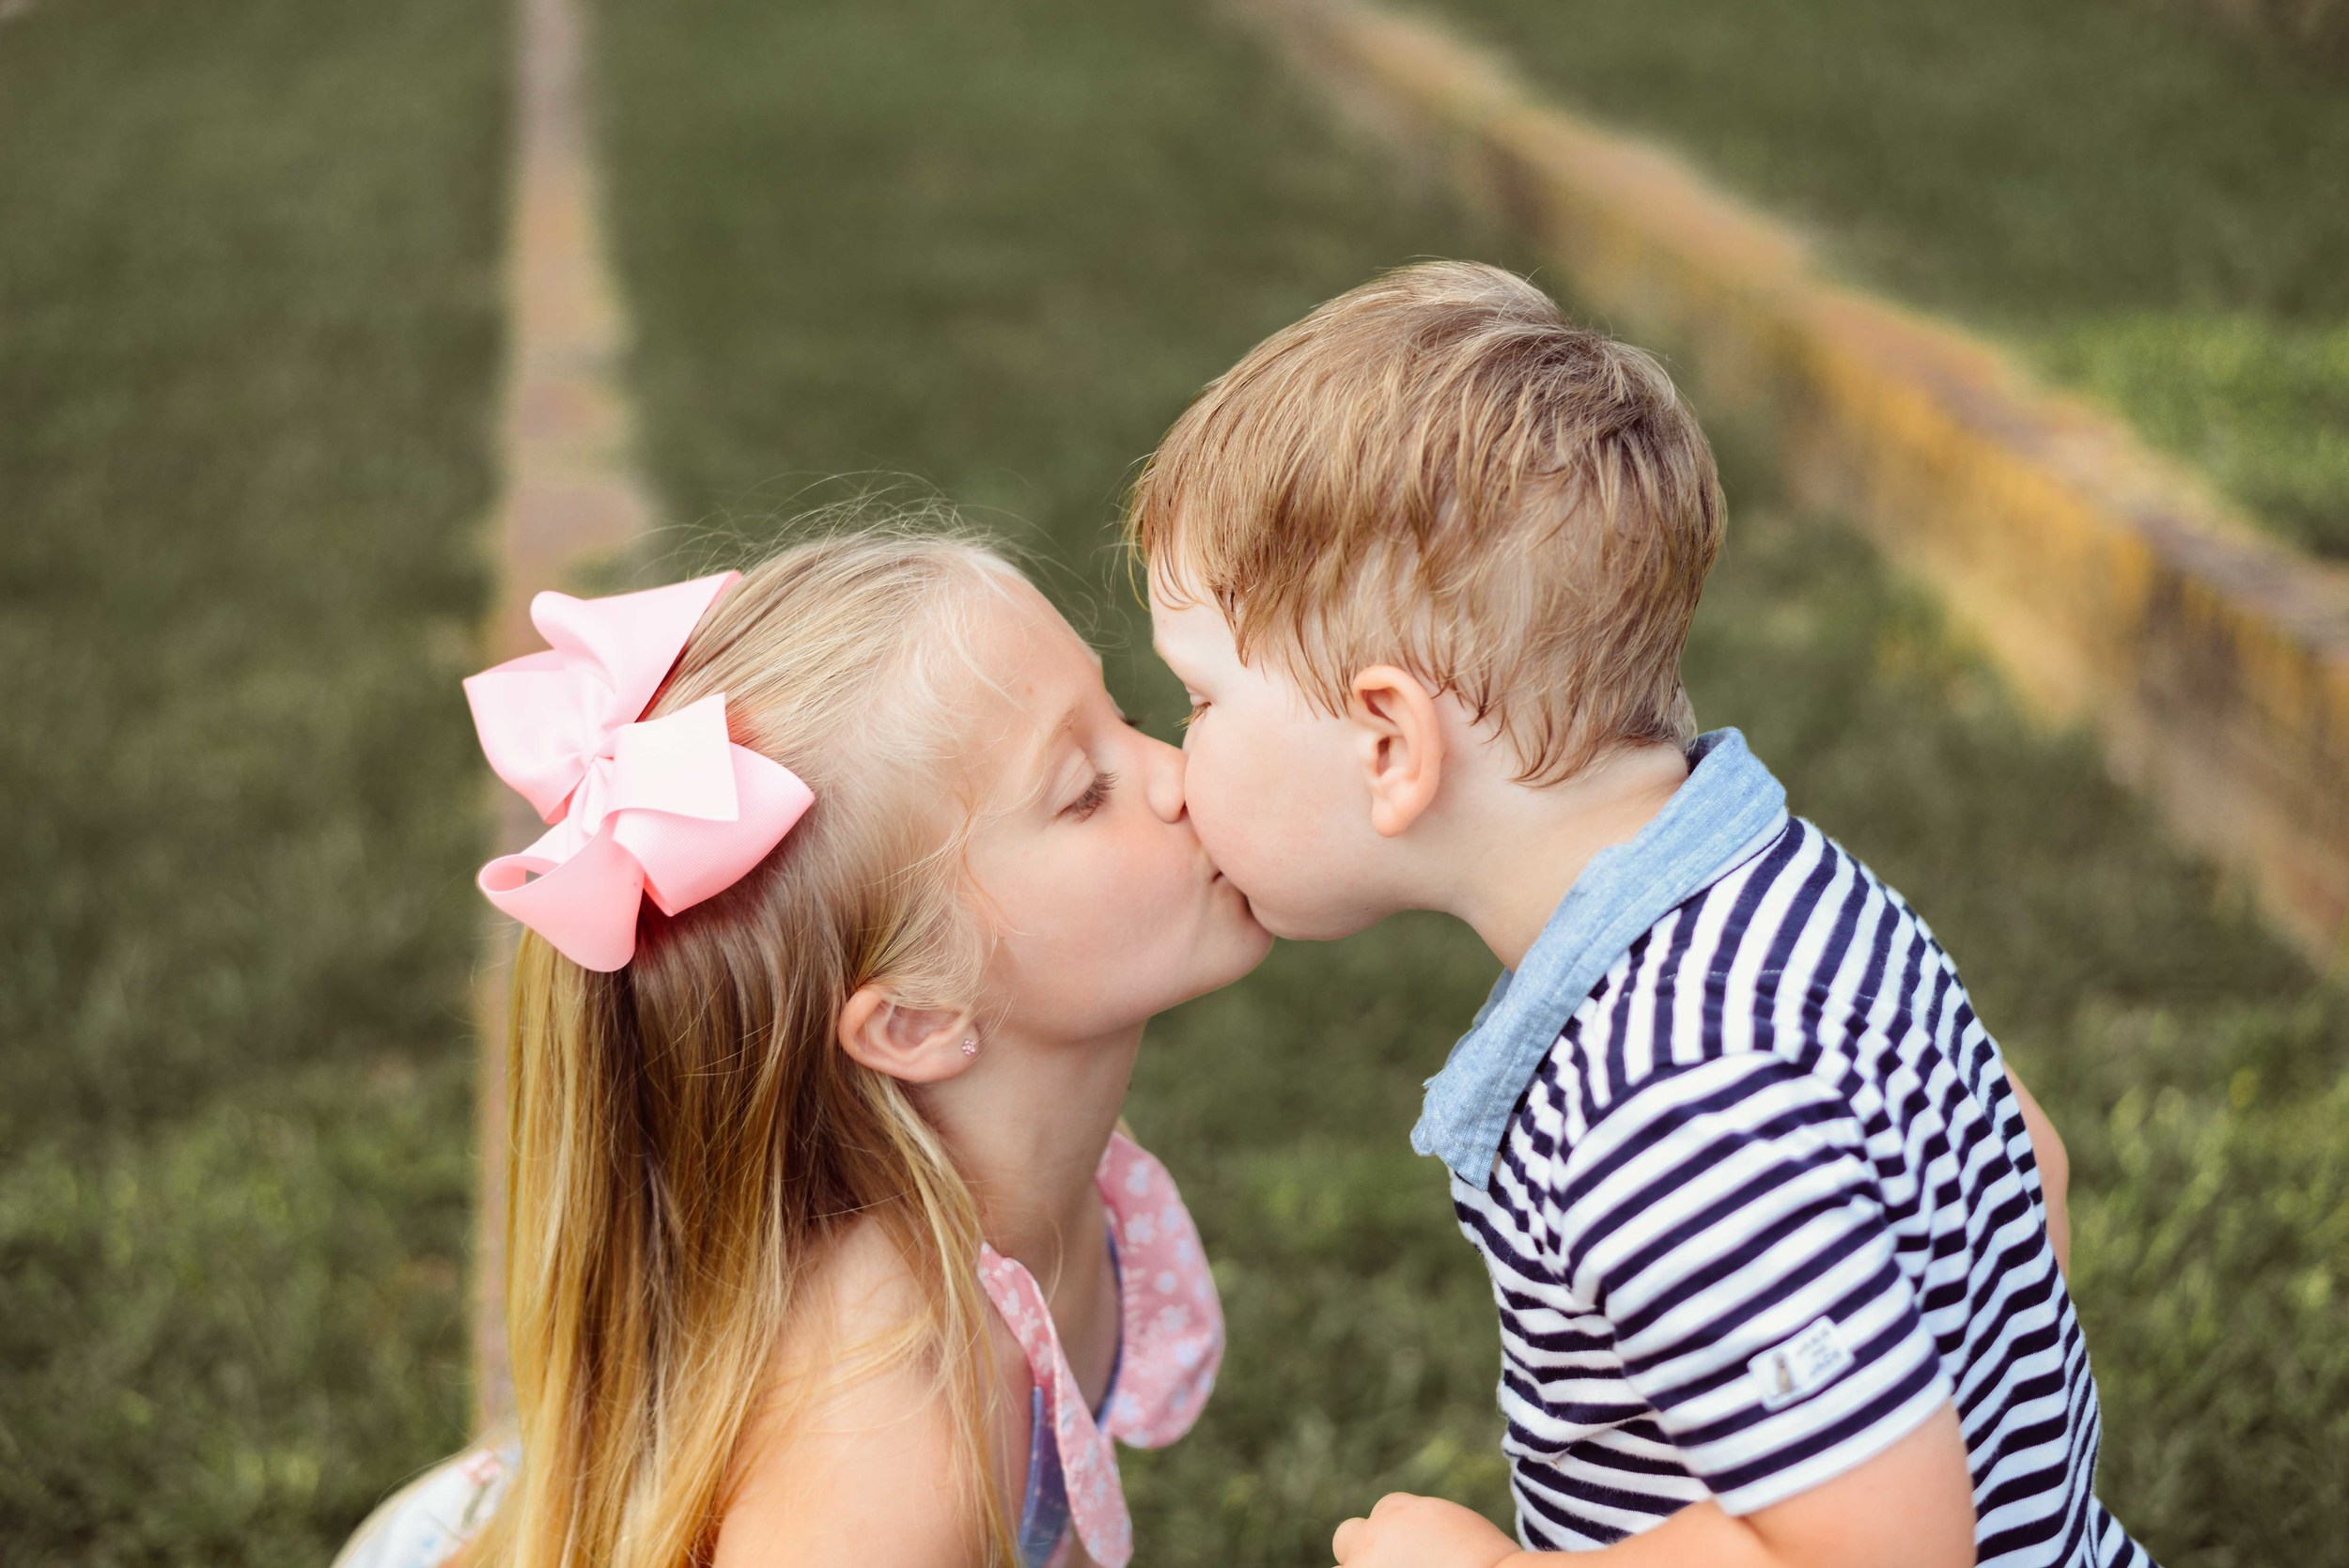 brother and sister kissing at park